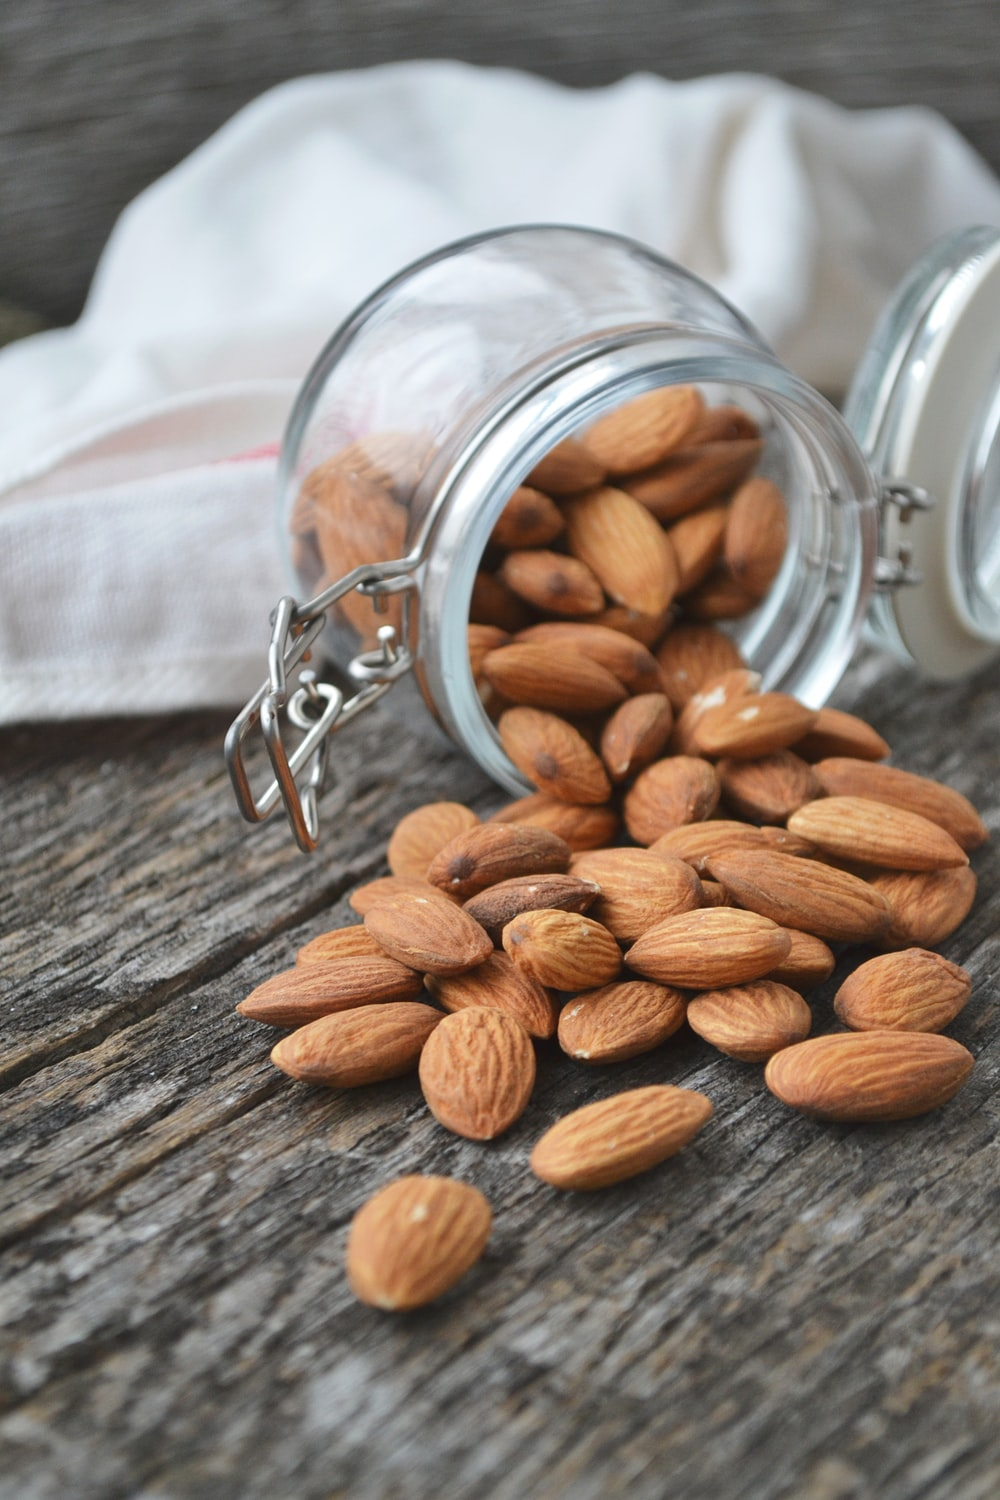 10 High Fibre Foods You Should Add To Your Daily Diet